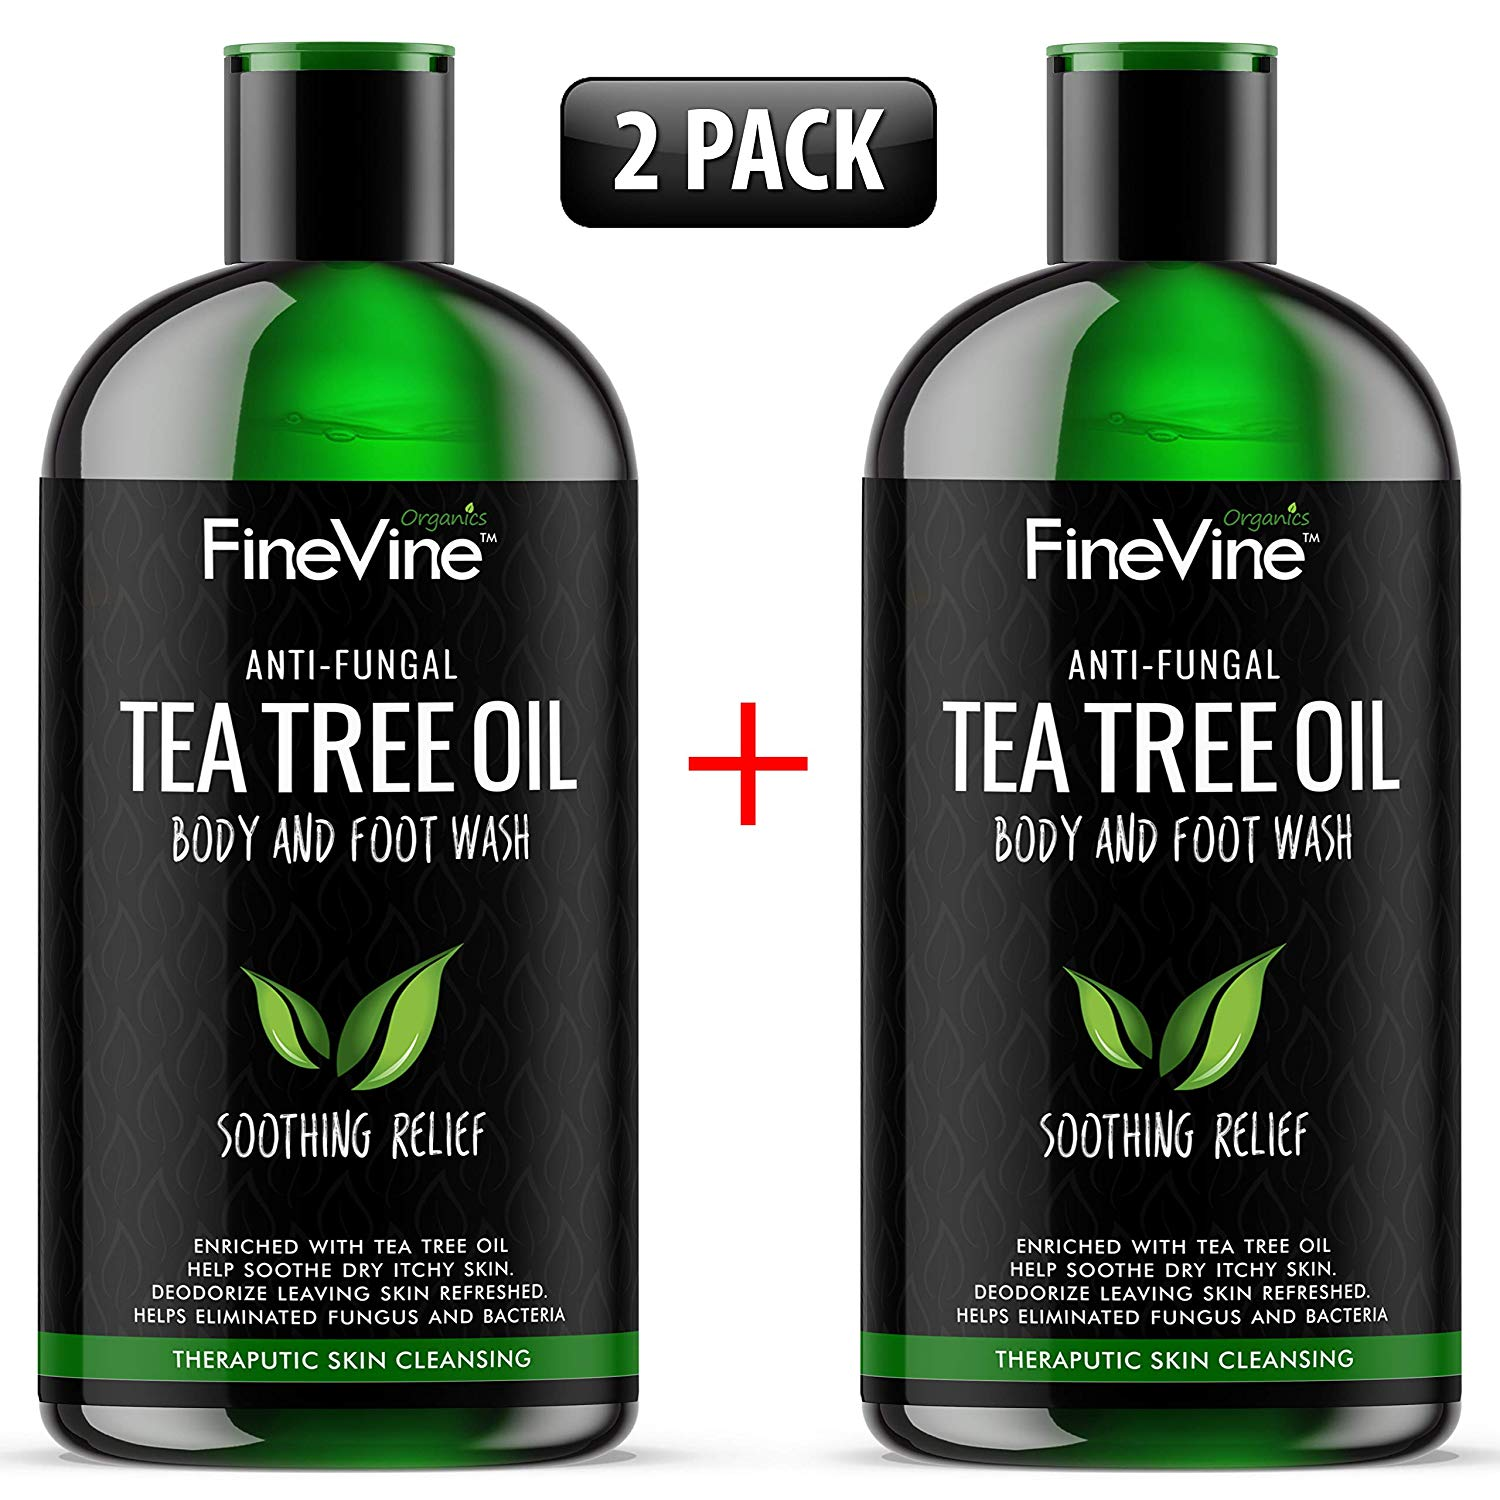 FineVine Anti-Fungal Tea Tree Oil Body and Foot Wash